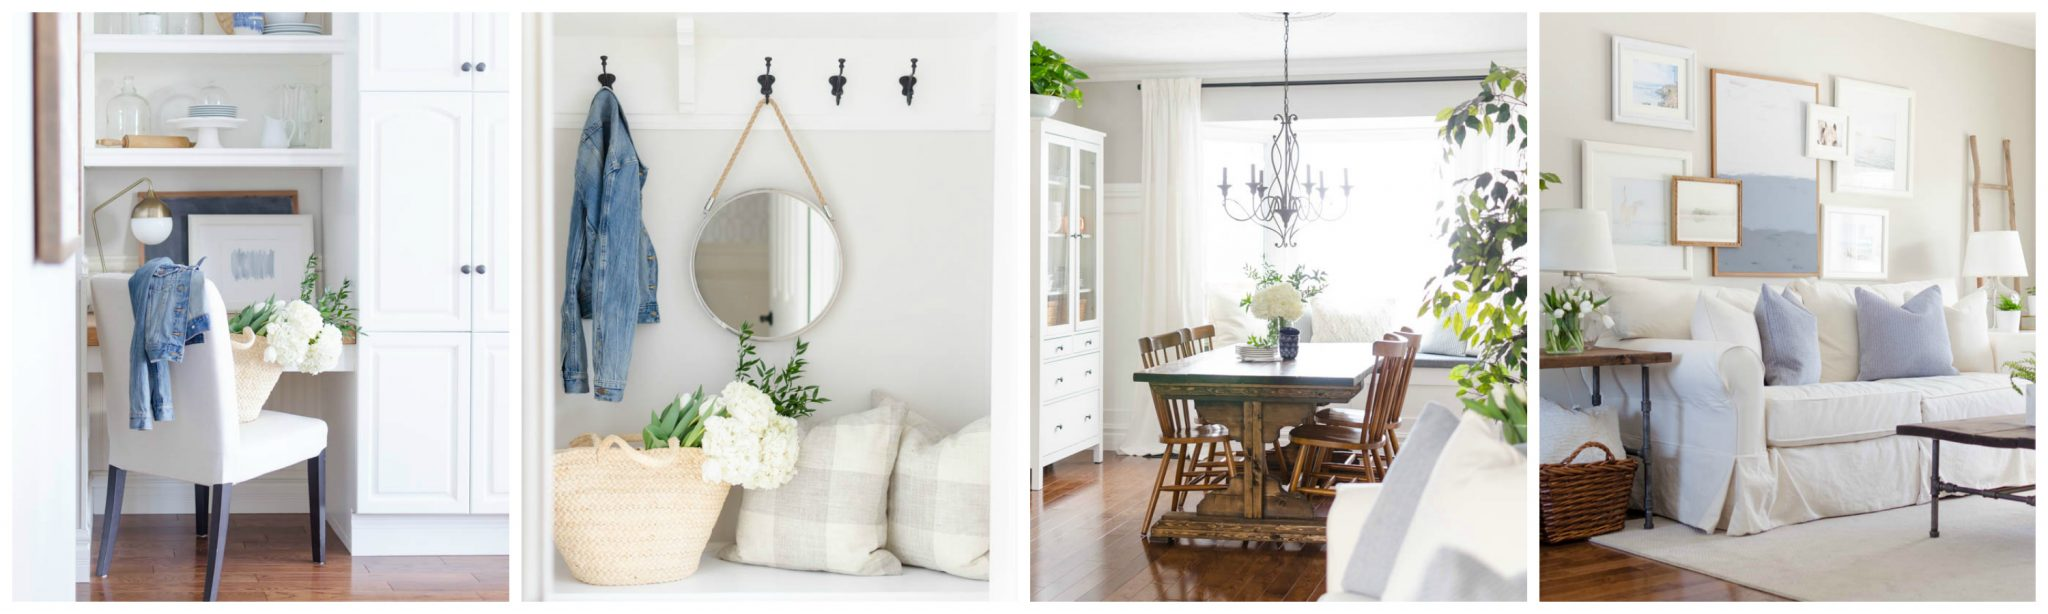 A bright and inviting spring home tour of this modern farmhouse